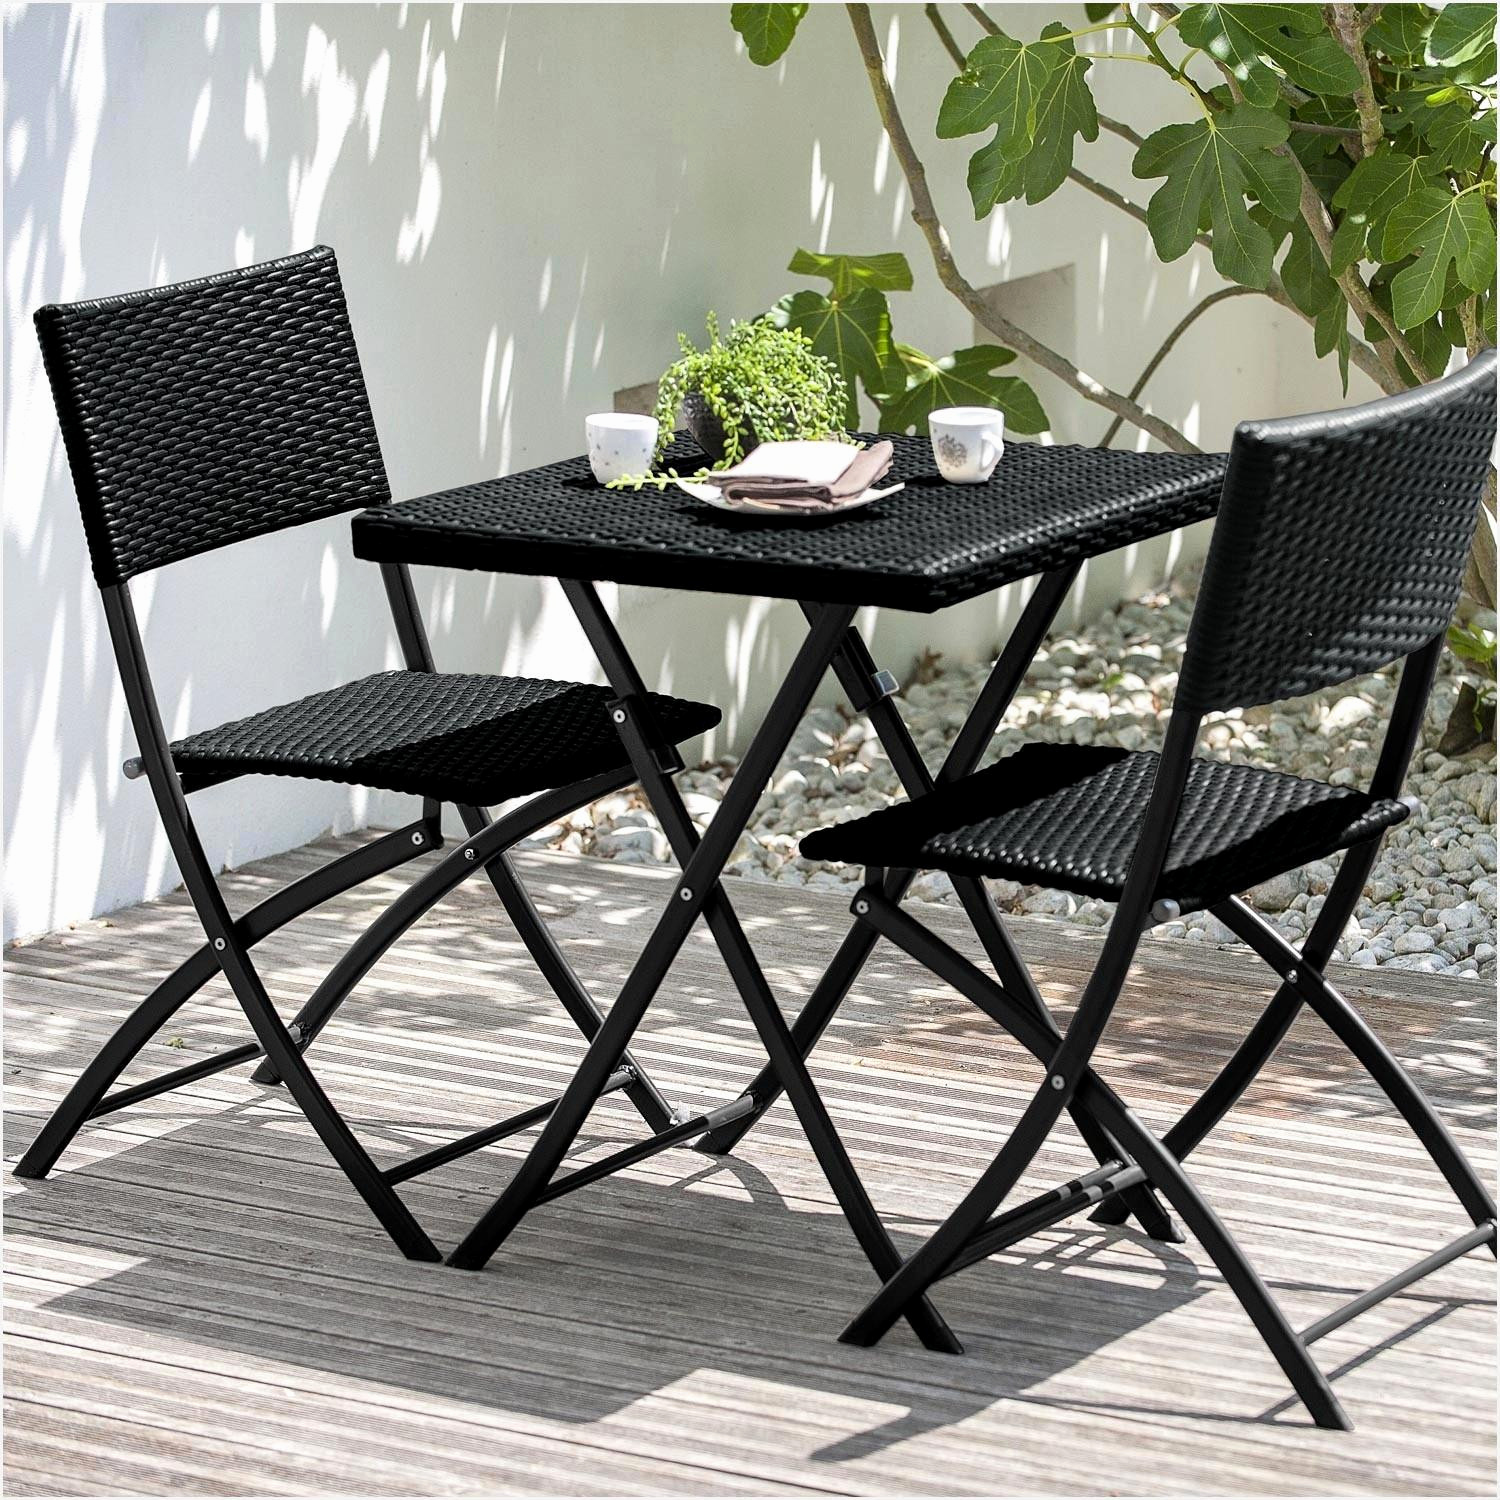 table de jardin alinea beau table de jardin auchan luxe chaise table haute cuisine table haute of table de jardin alinea